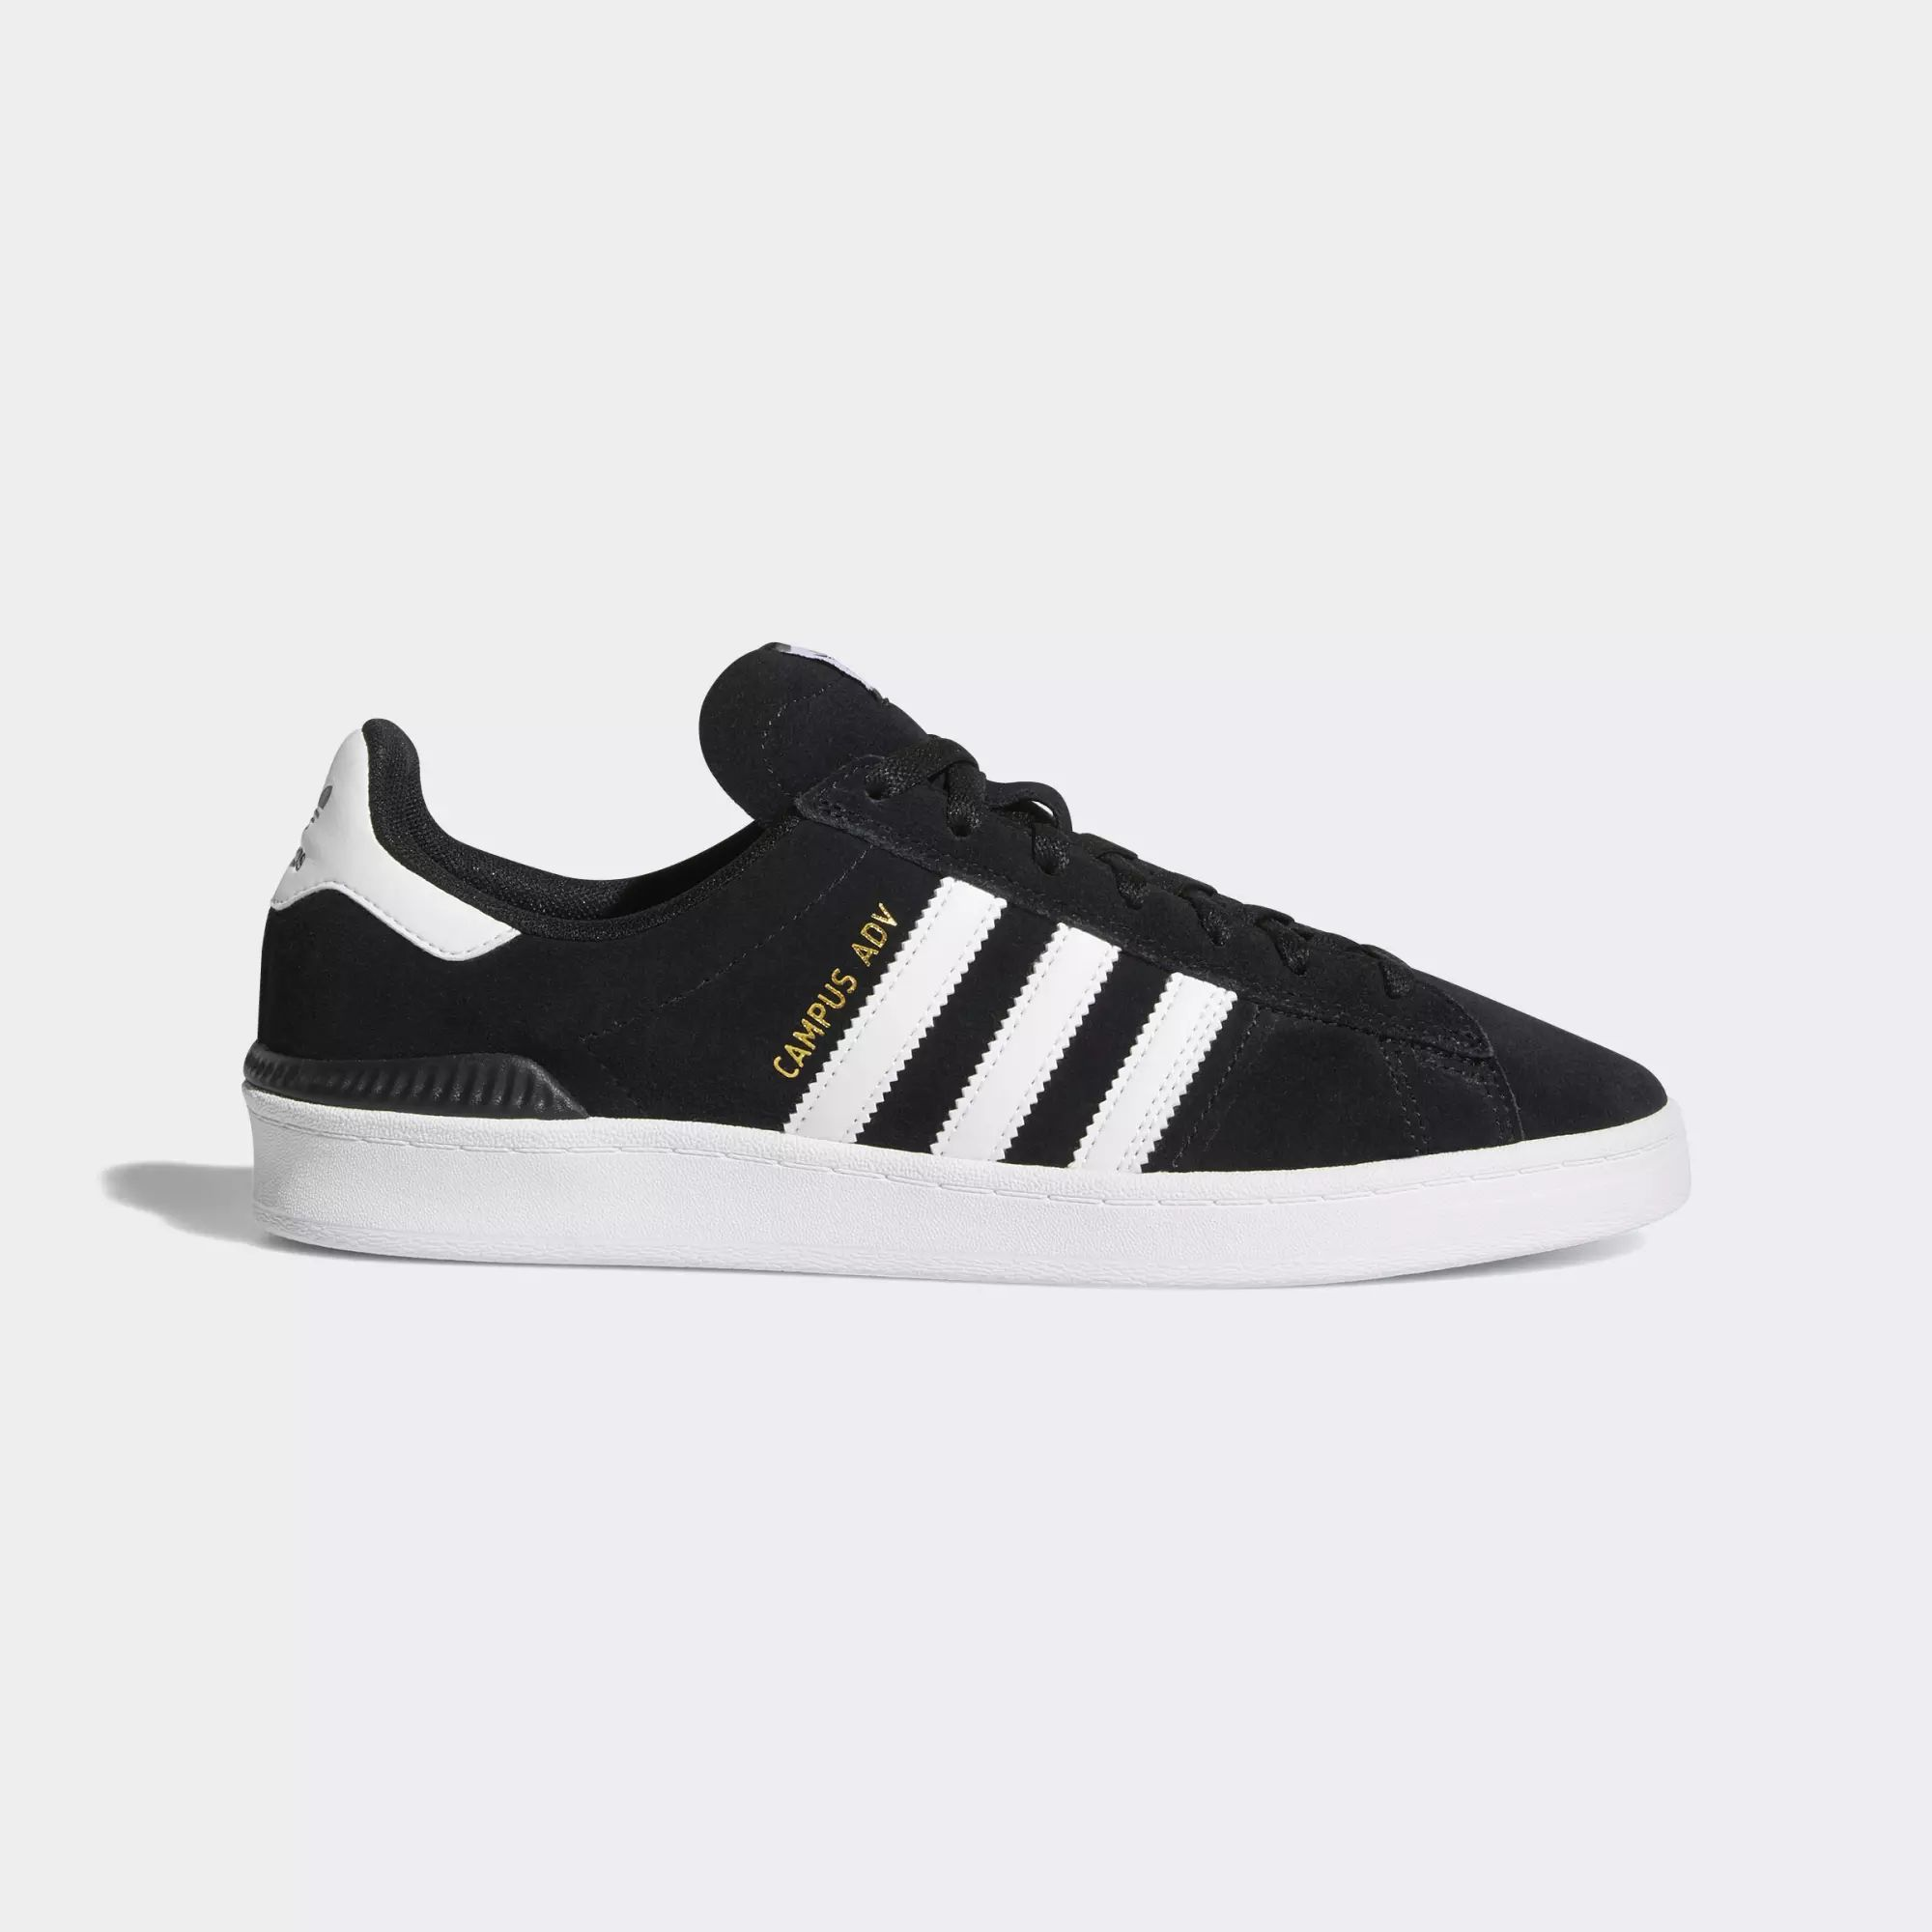 Adidas Campus ADV Shoes - Core Black / Ftwr White / Ftwr White